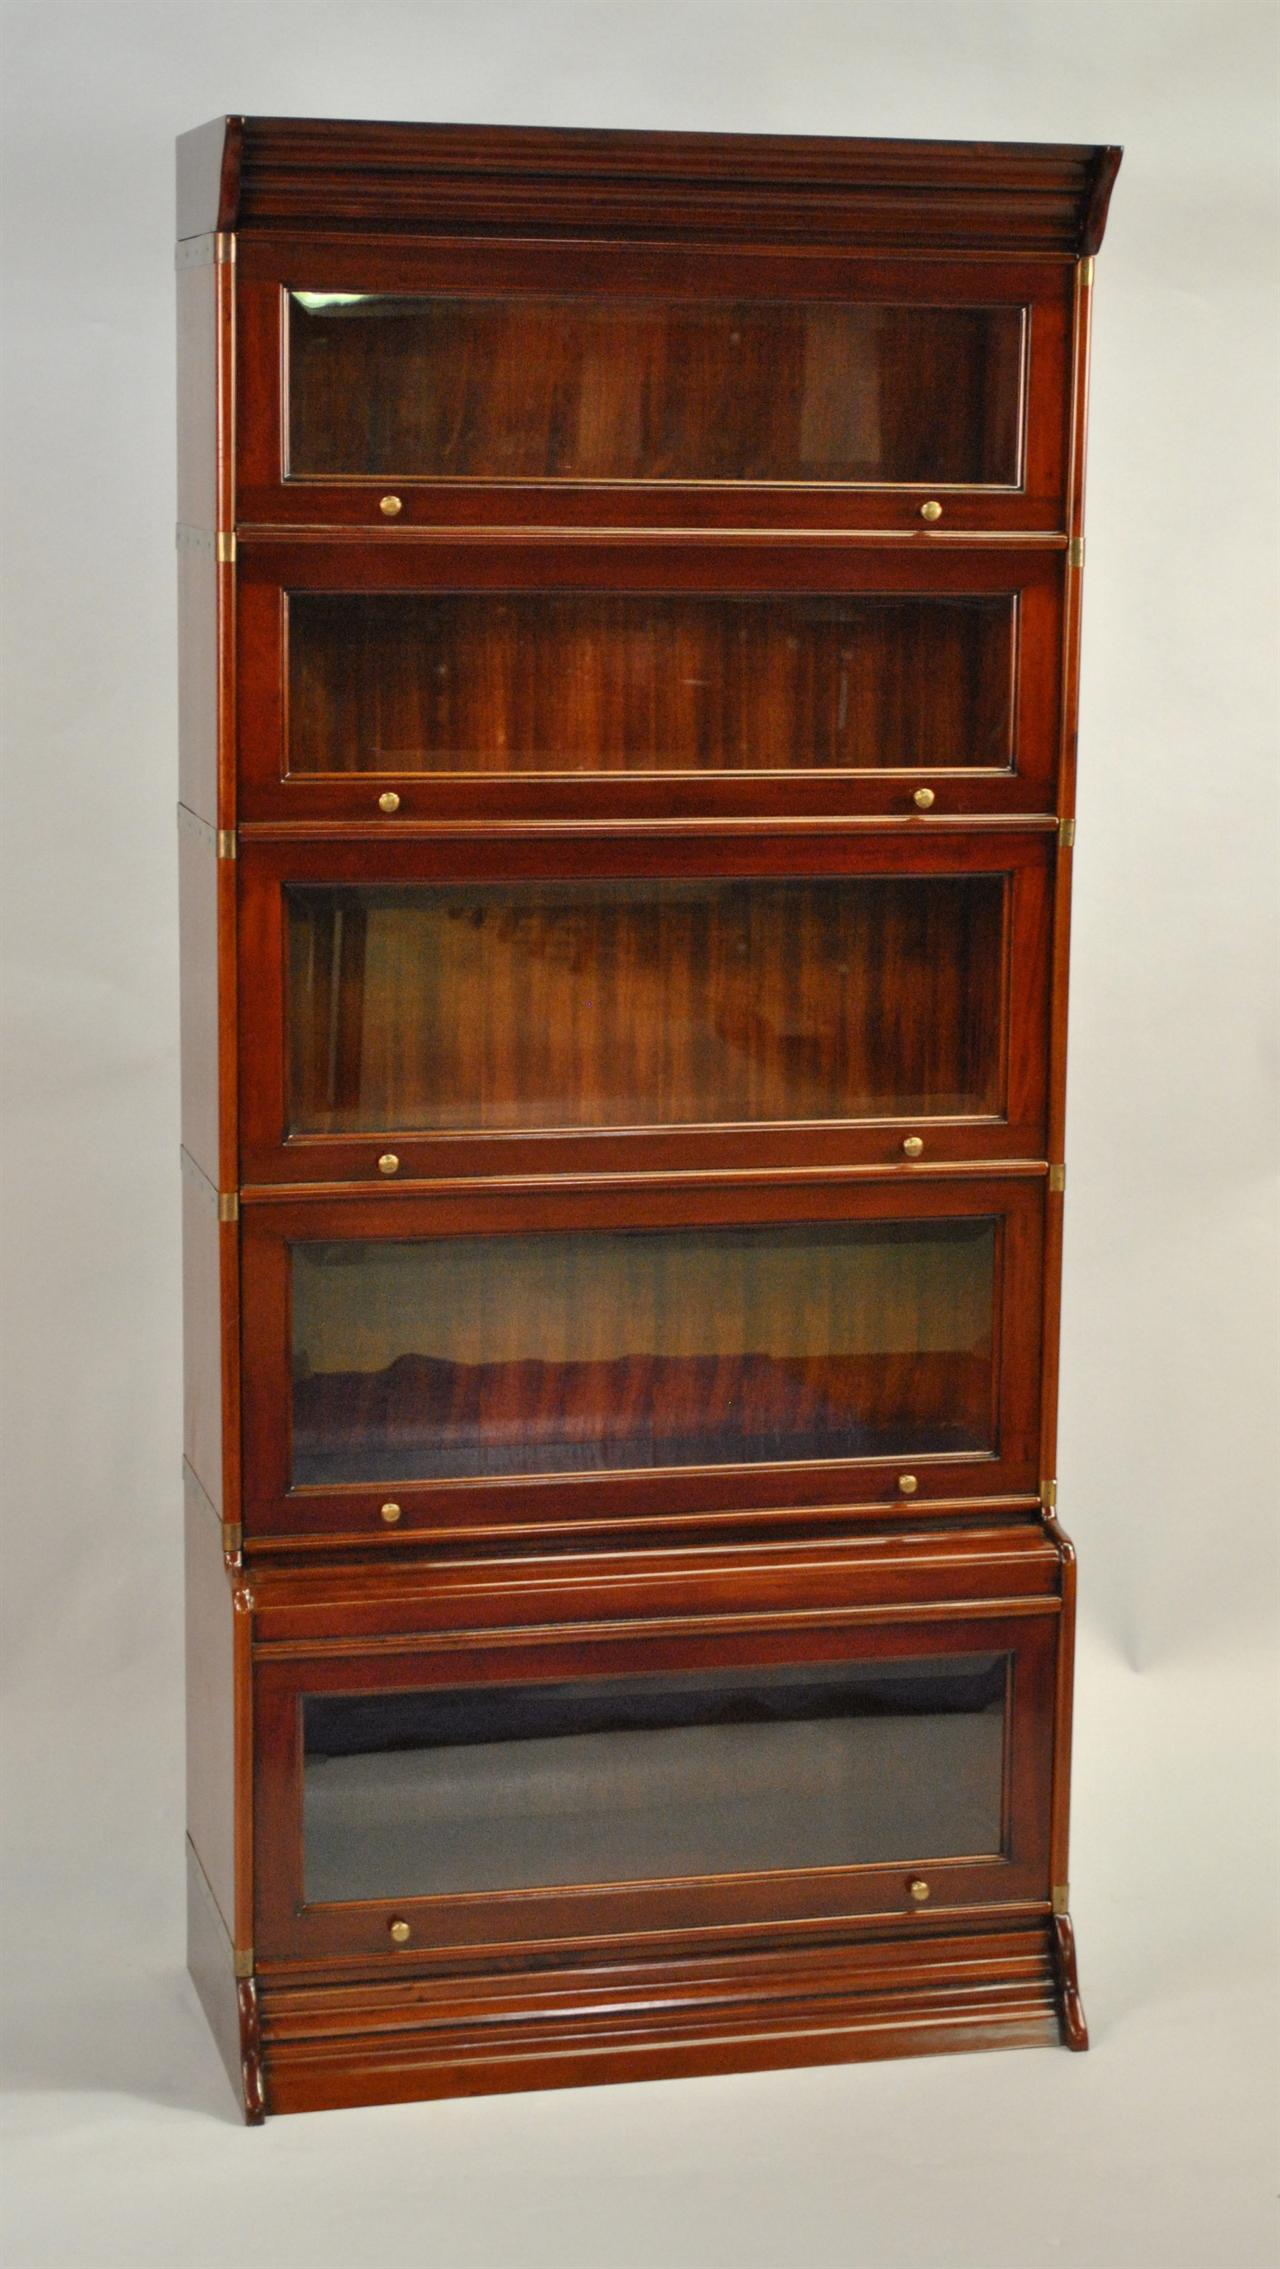 Antique Style Solid Mahogany Timber Coffee Table 4 Drawers moreover B625 Antique Mahogany 2 Tiered Server Buffet Sideboard moreover Chippendale Bedside Table With Shelves likewise Chippendale Furniture likewise 230118. on antique mahogany chippendale dining chairs